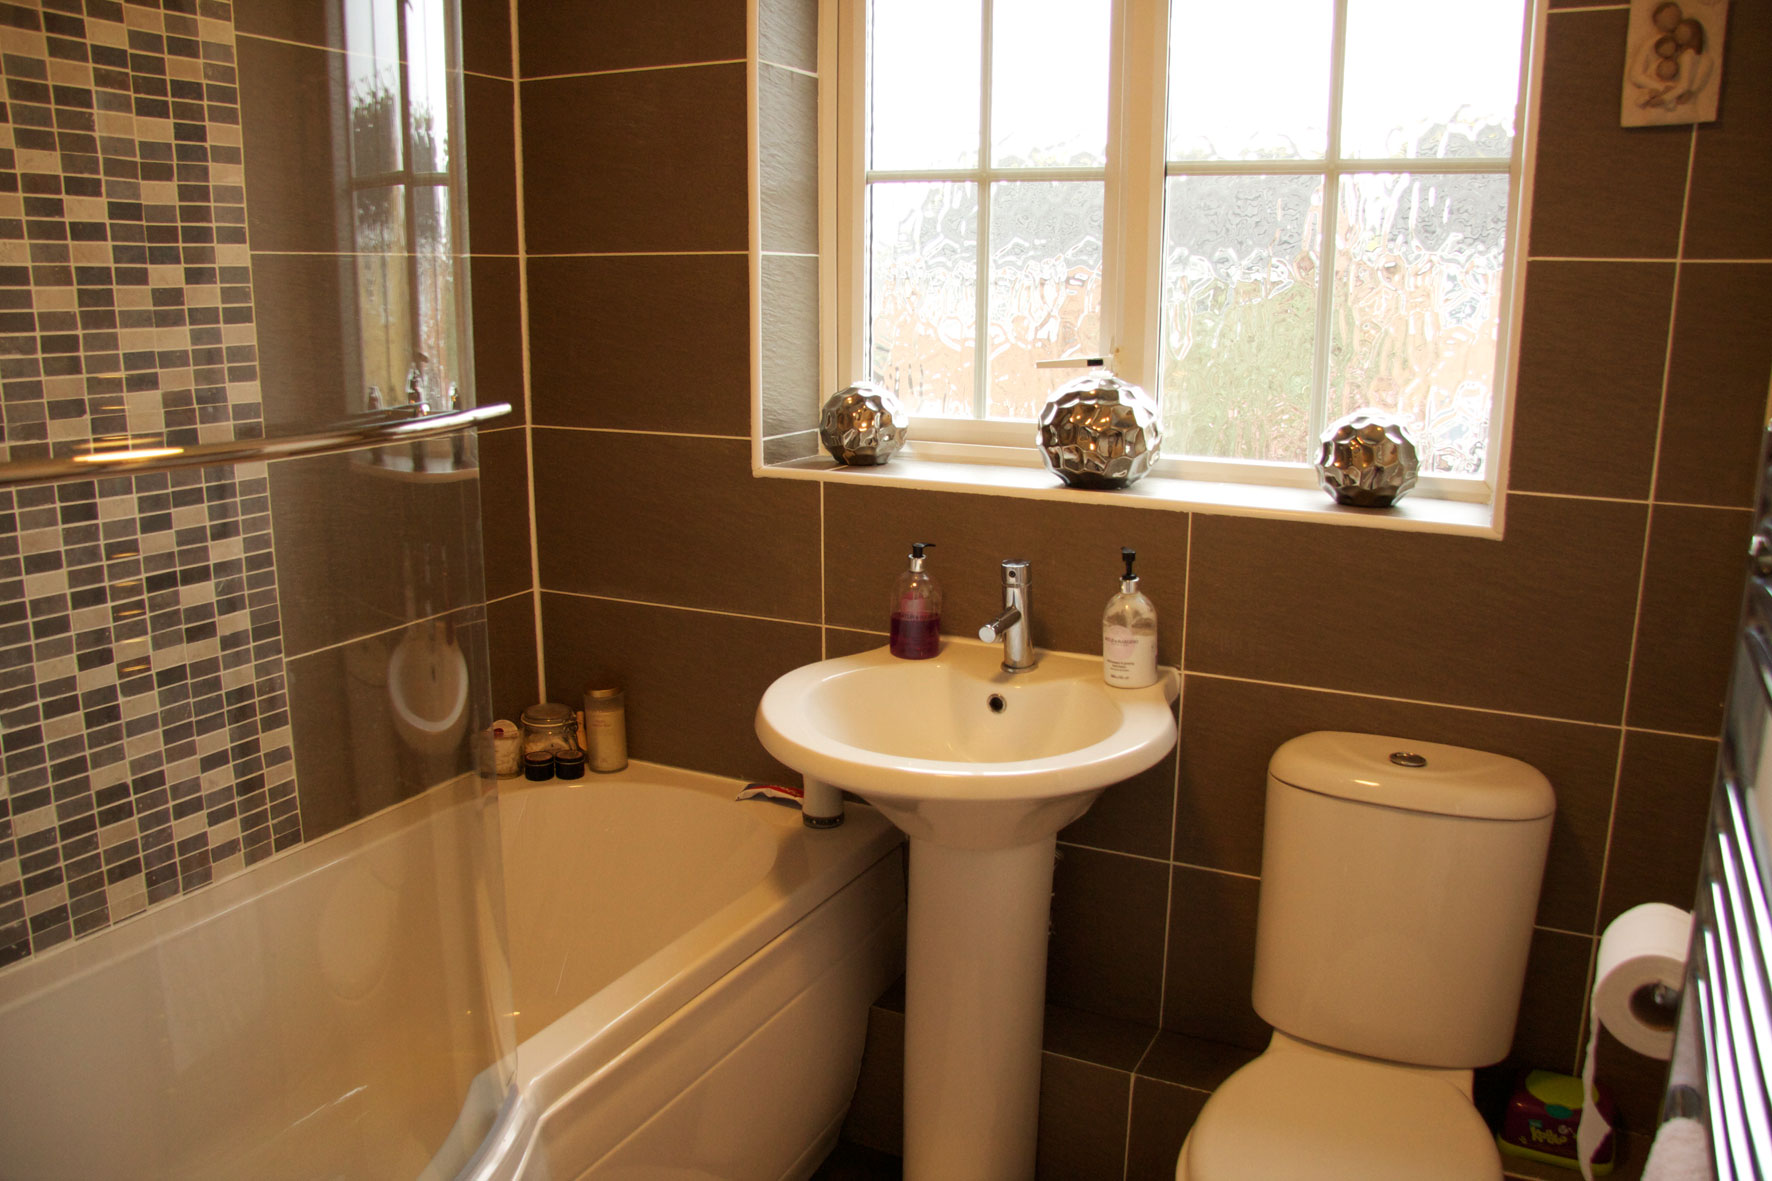 Work ac homeworks northampton based home improvements Bathrooms pictures